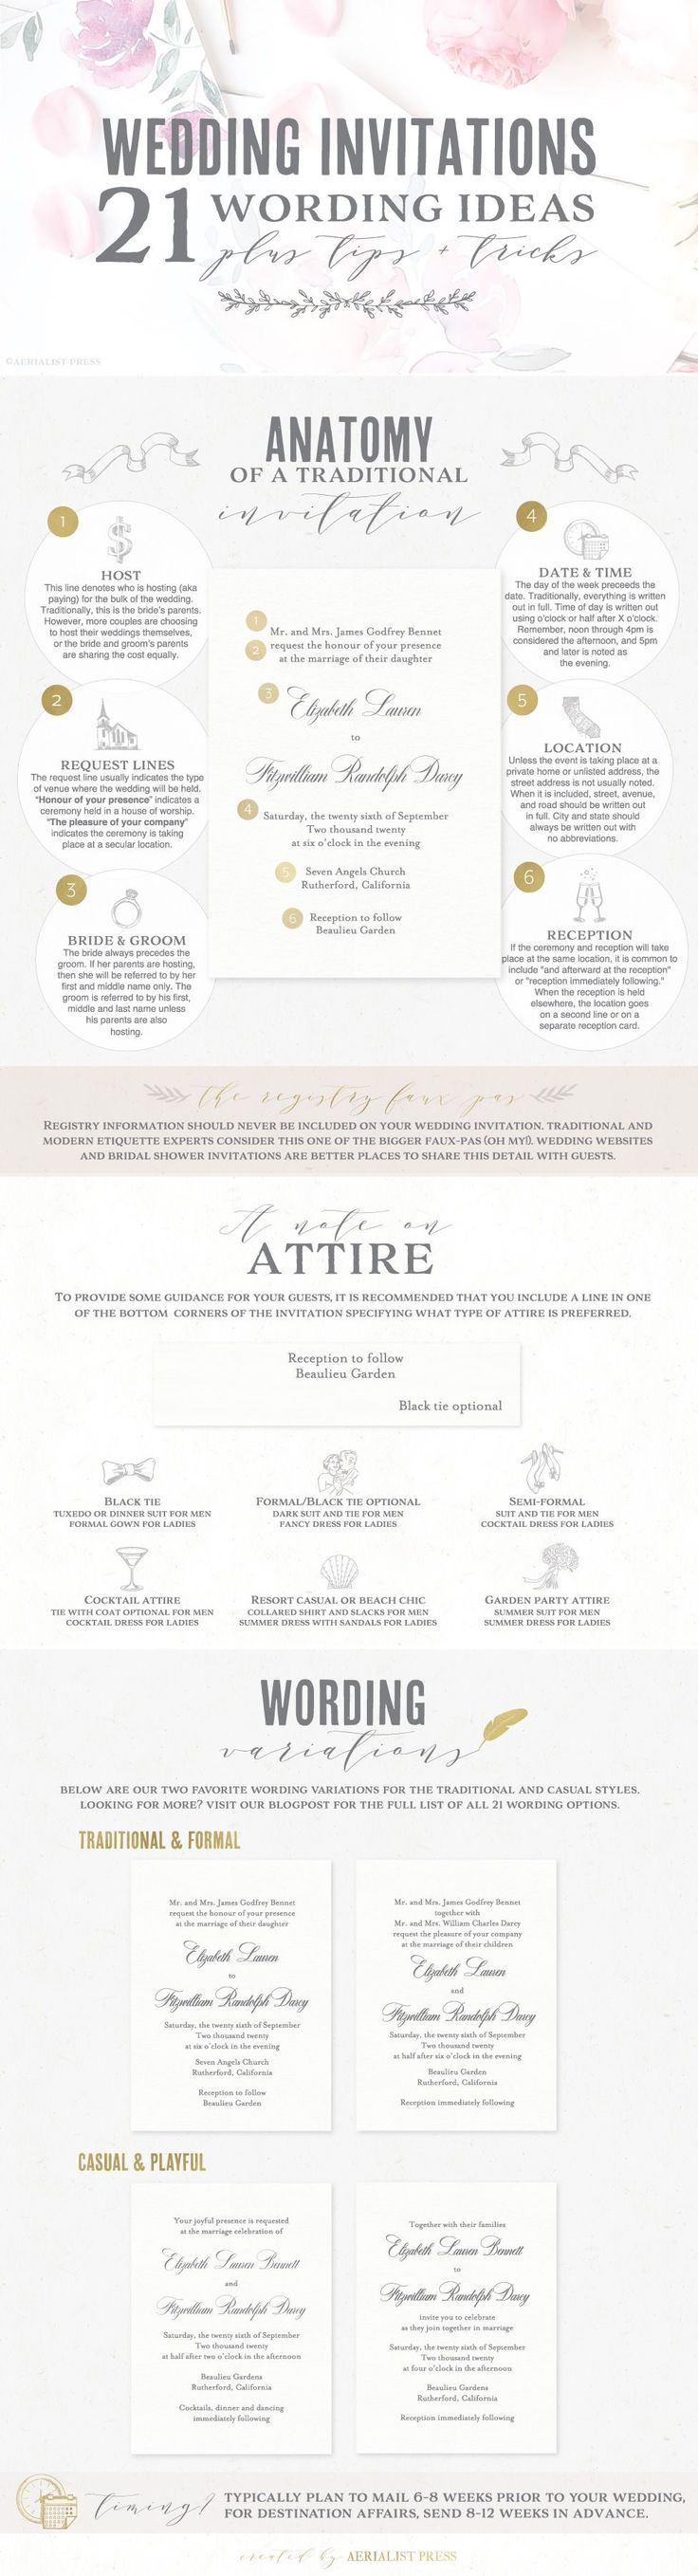 Best 25 Best wedding invitations ideas on Pinterest